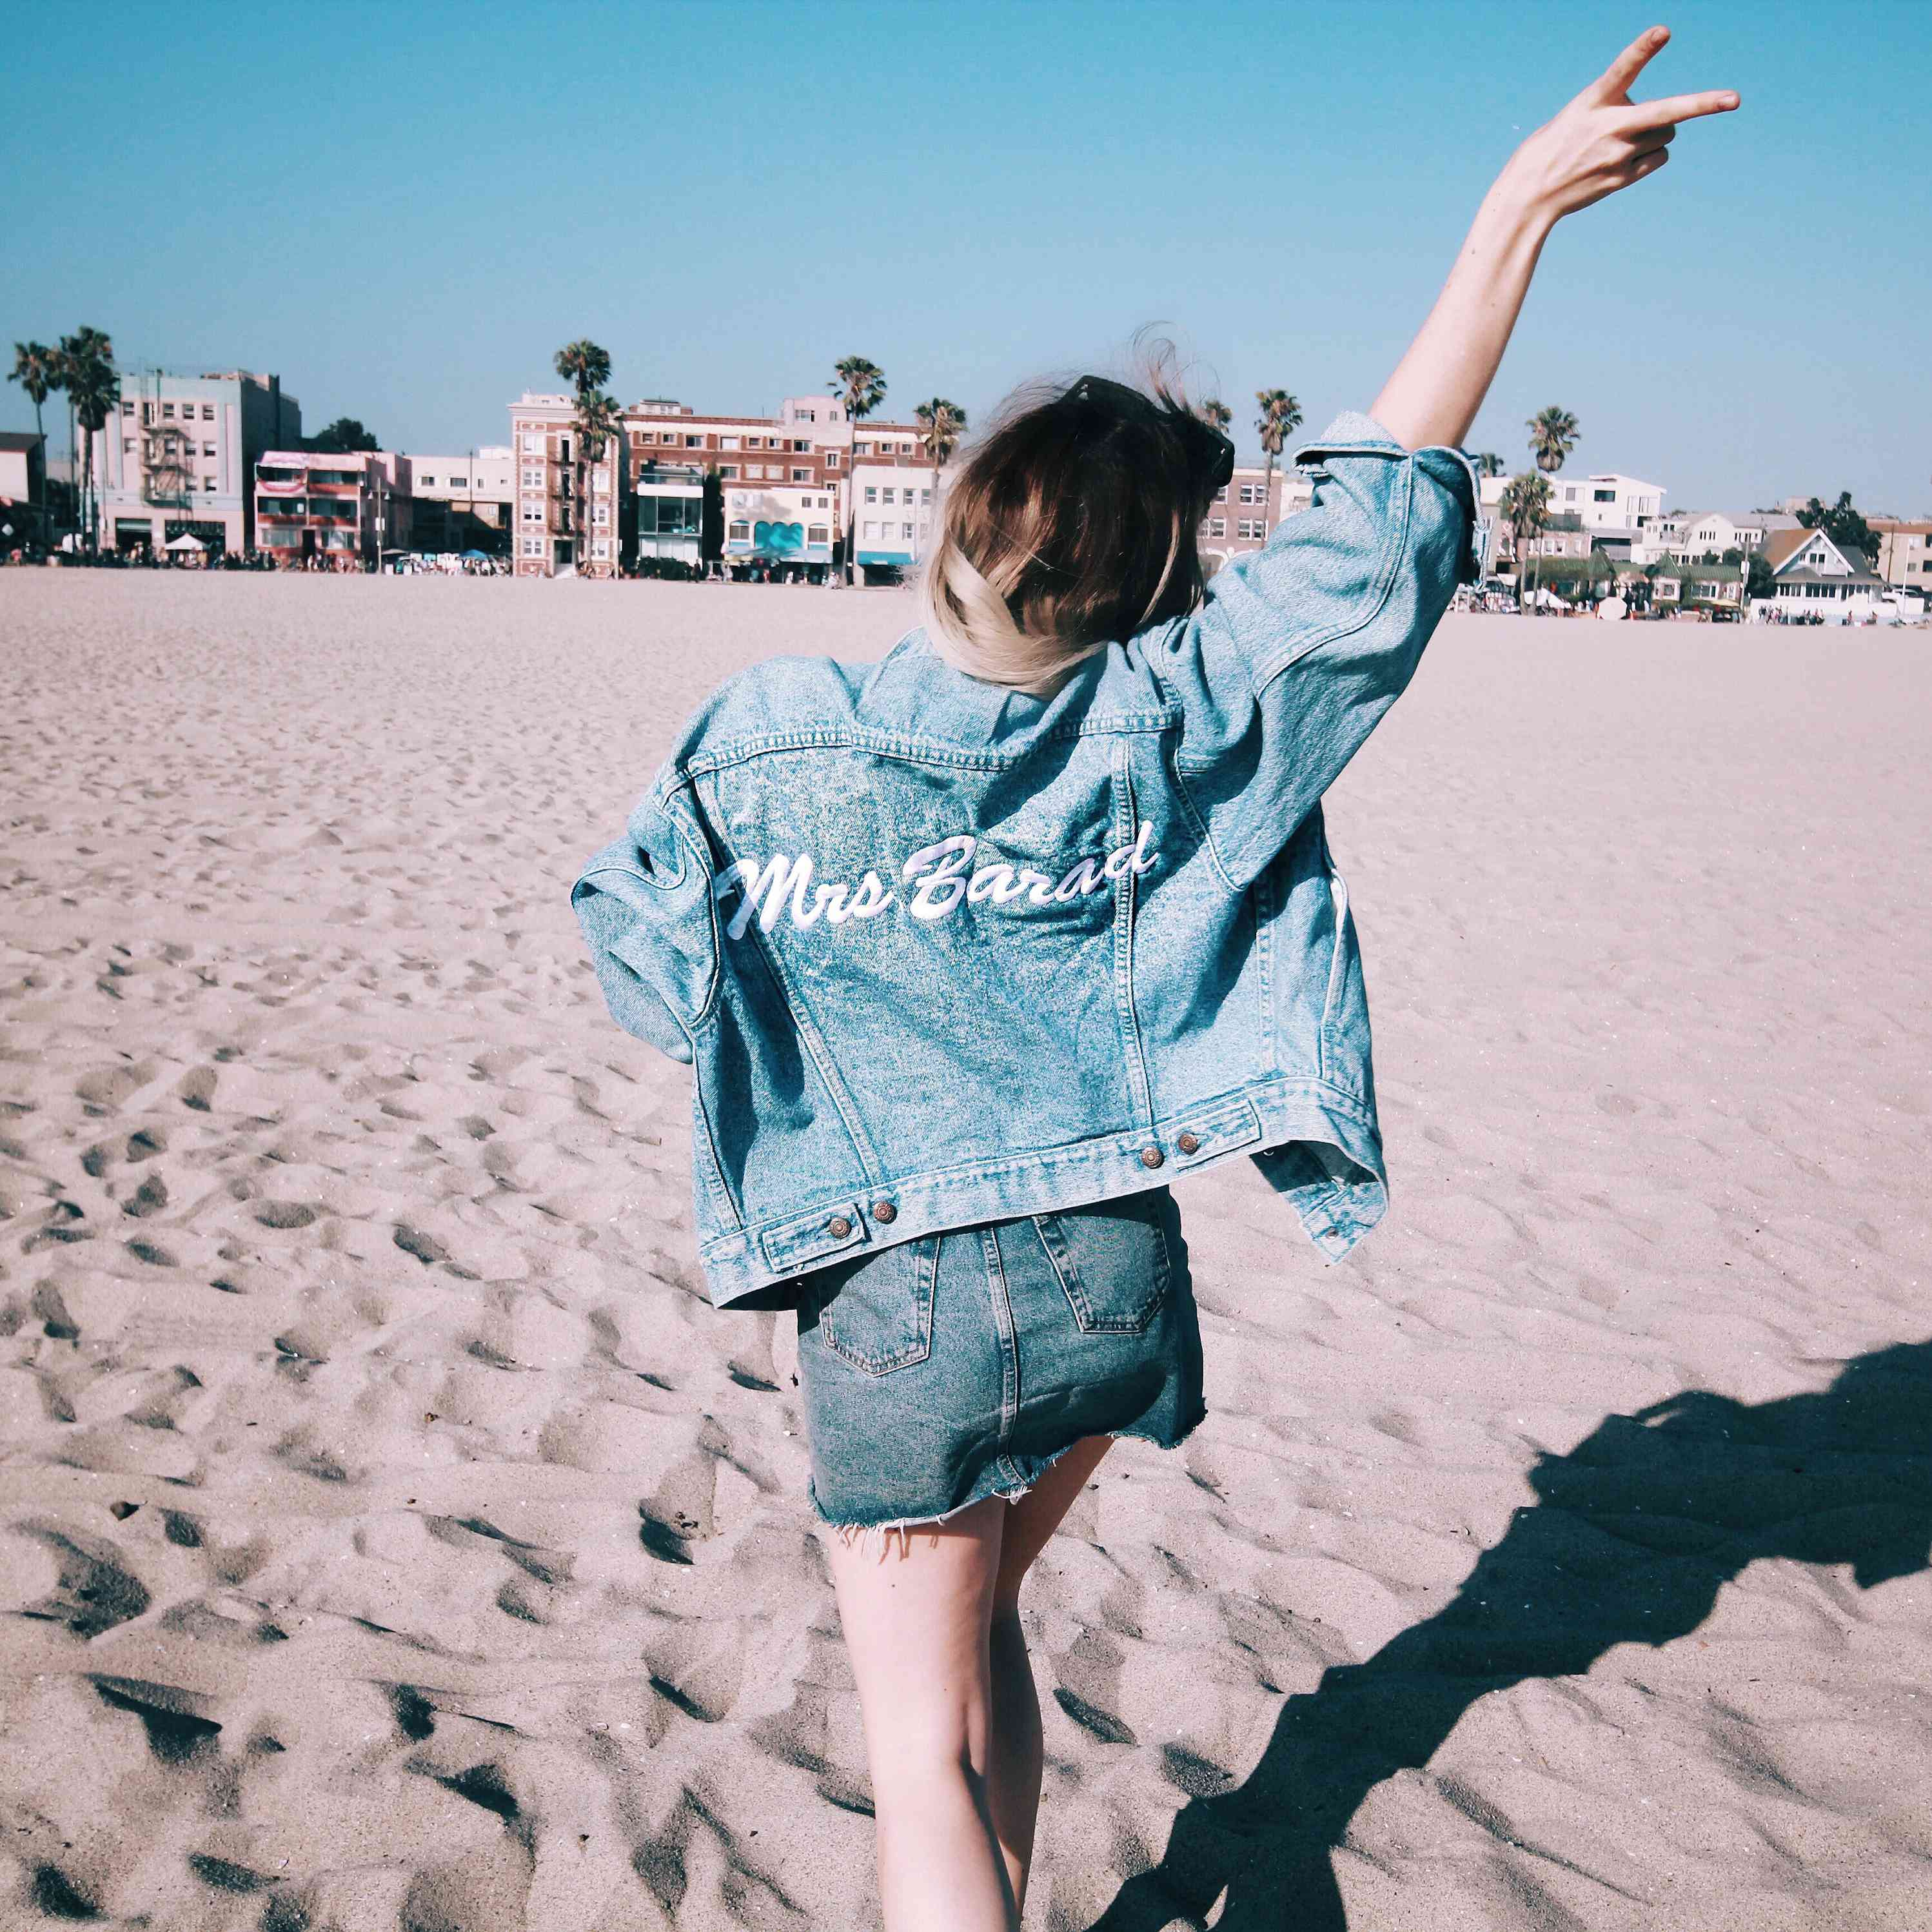 Cool Rider: 16 Custom Wedding Jackets to Cover Up Your Dress